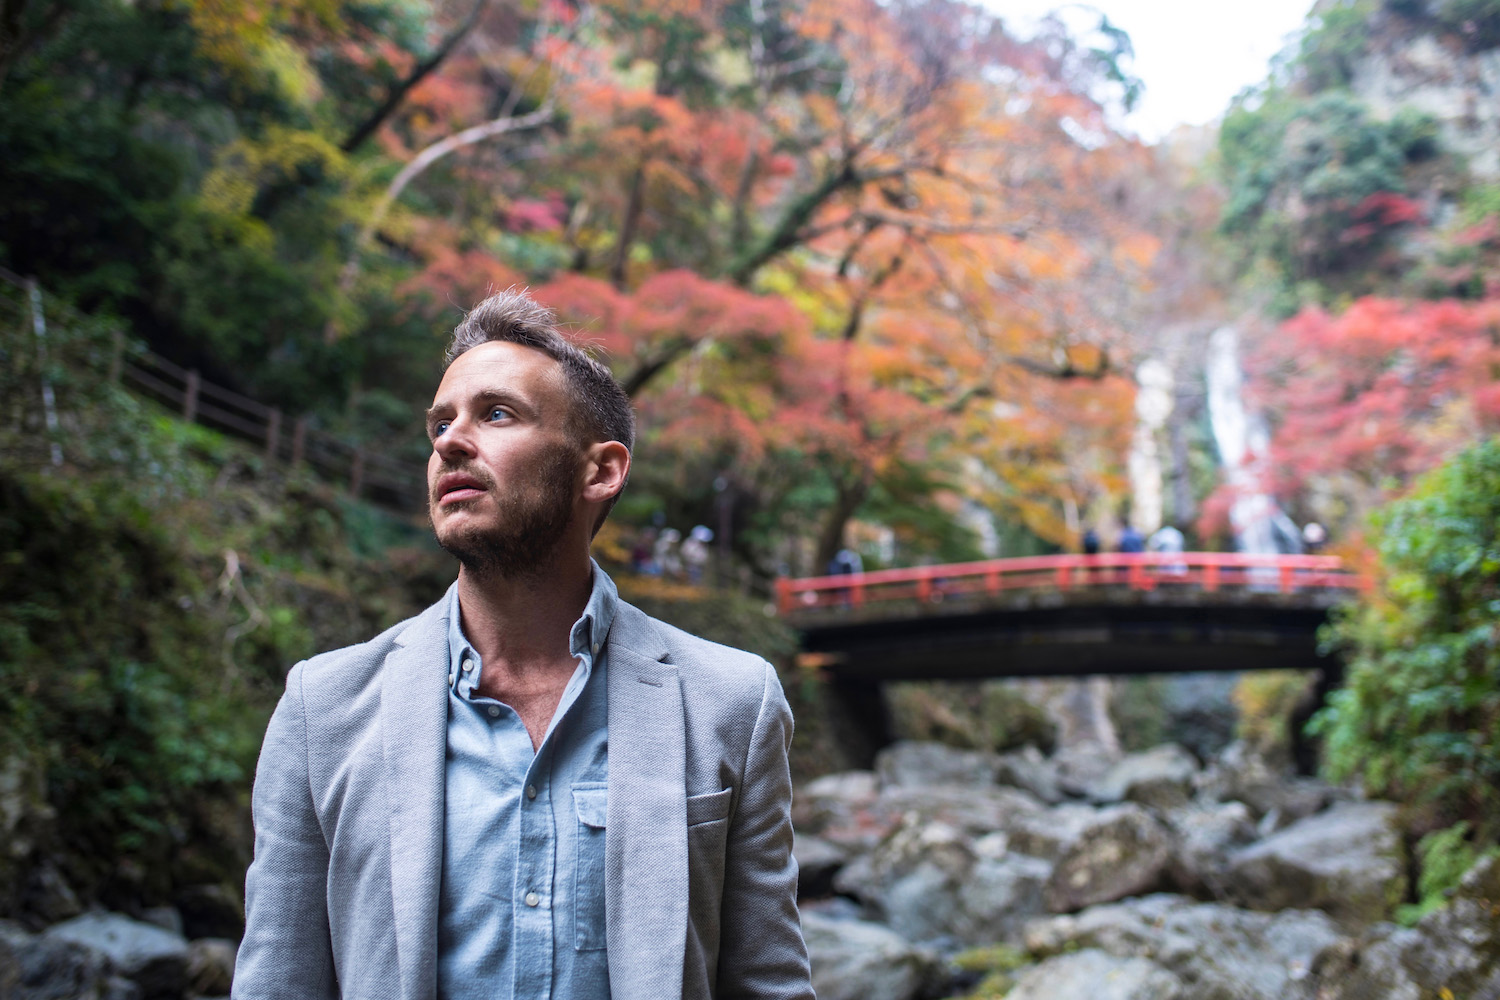 Robert Schrader in Autumn in Japan